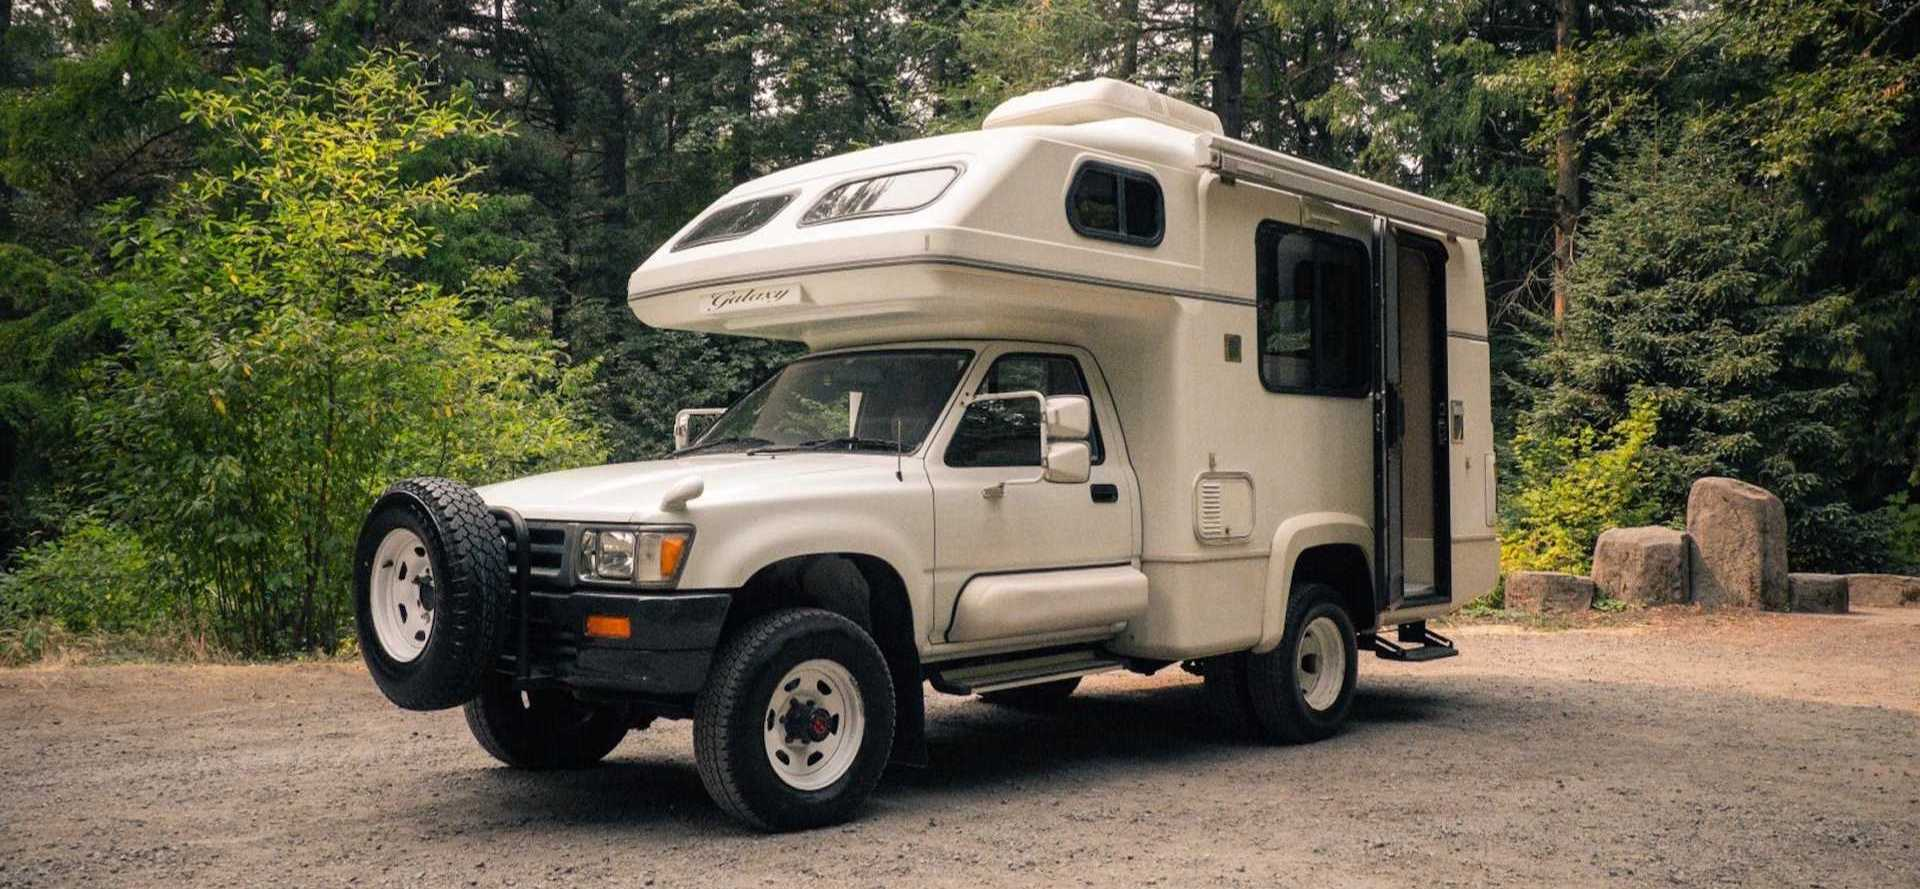 Toyota Hilux Galaxy Camper Is A Slow '90s Time Capsule